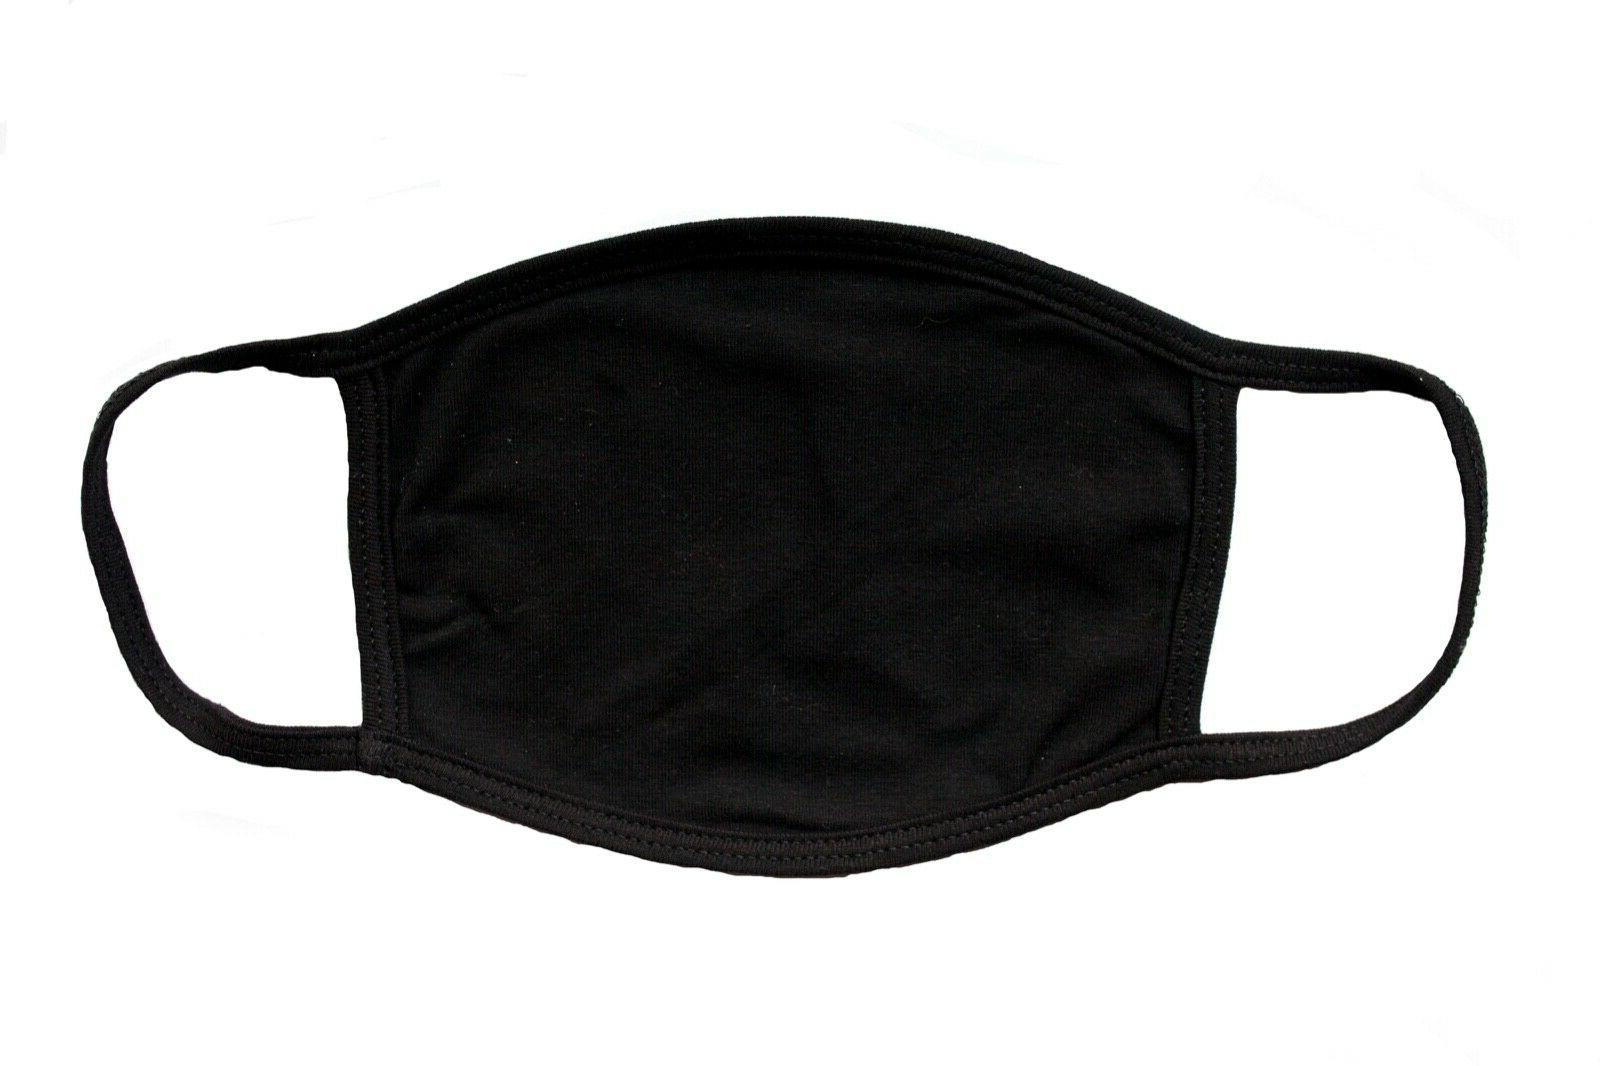 adult blank black face mask for face